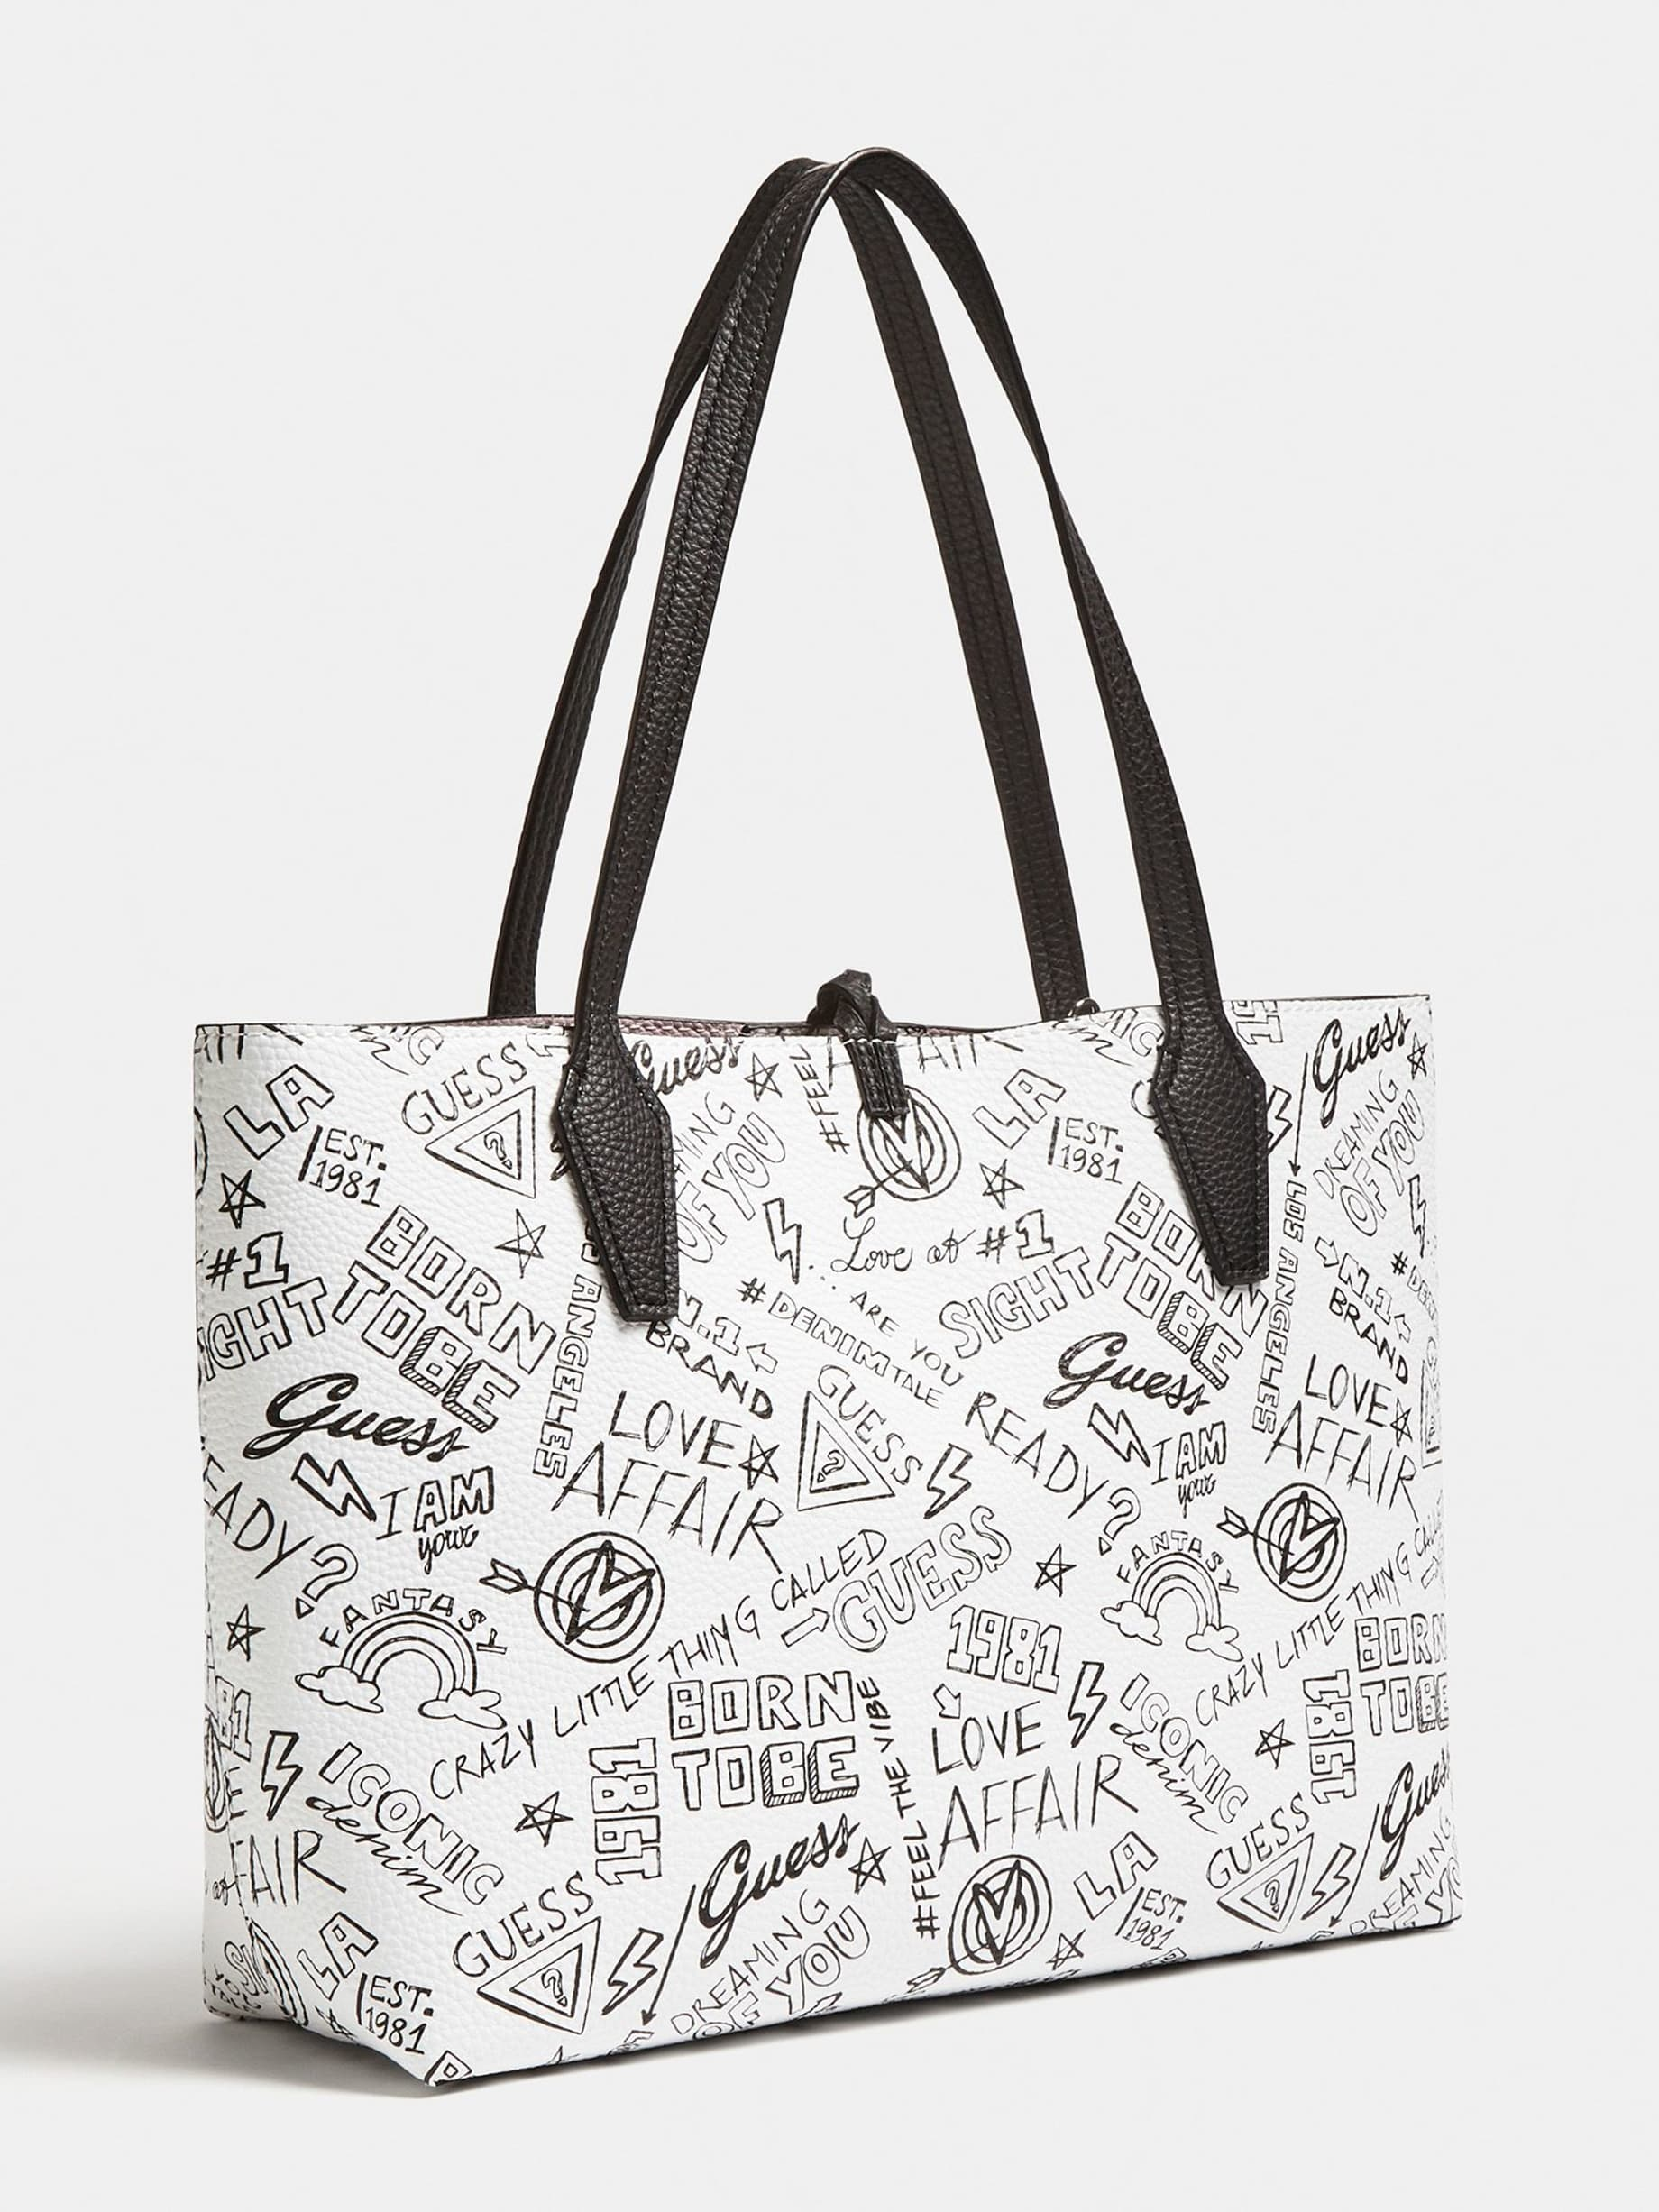 vestiti guess da cerimonia, Guess BOBBI Shopping bag